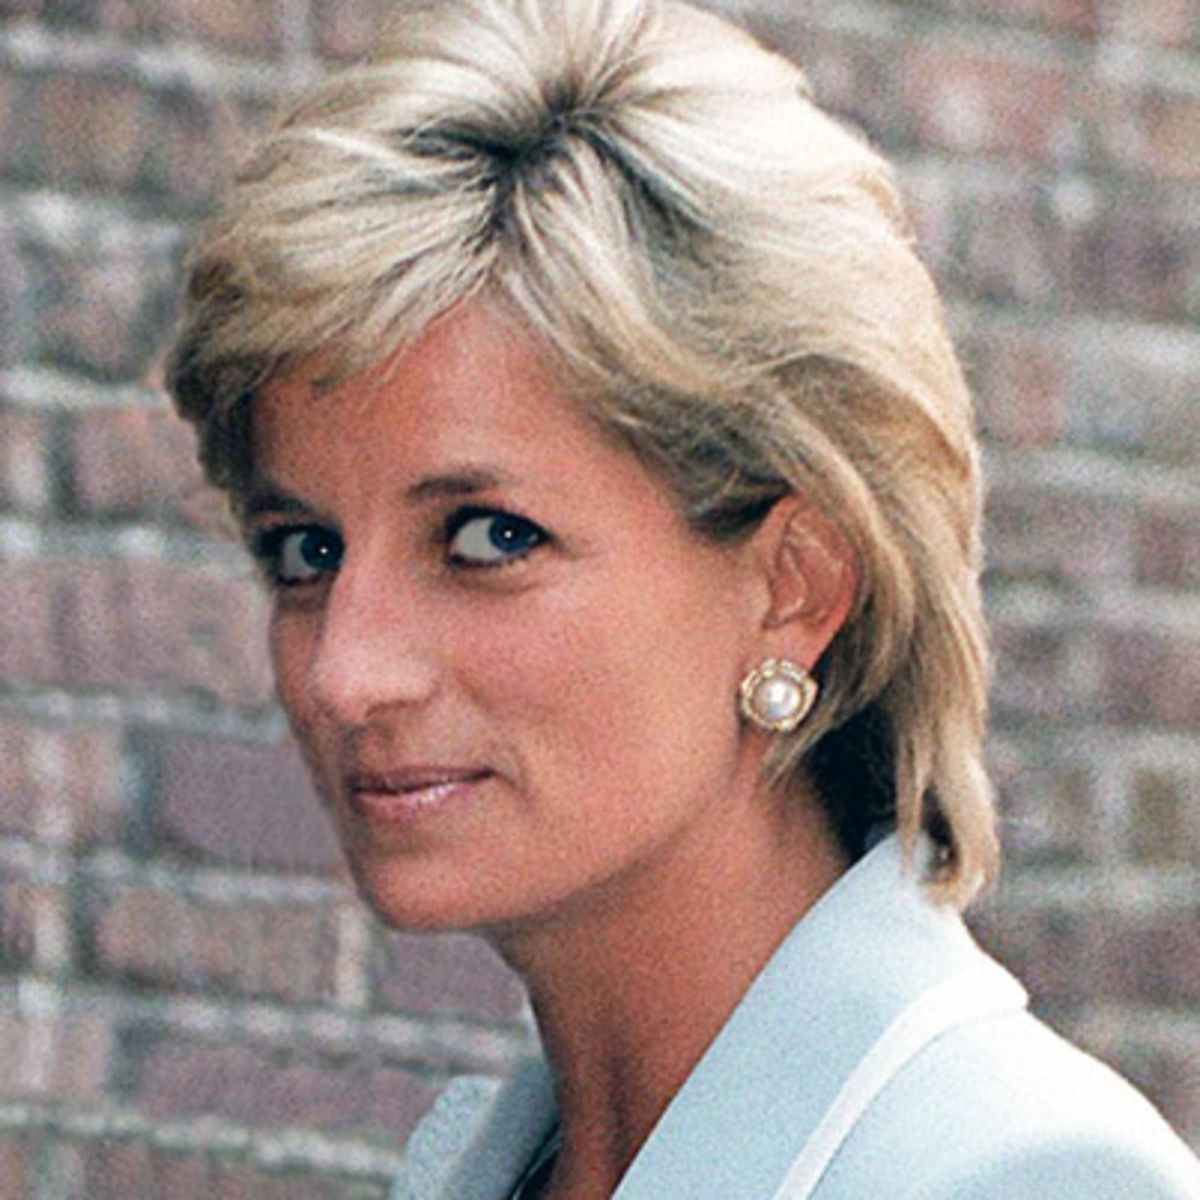 Princess Diana, Princess of Wales, was one of the most